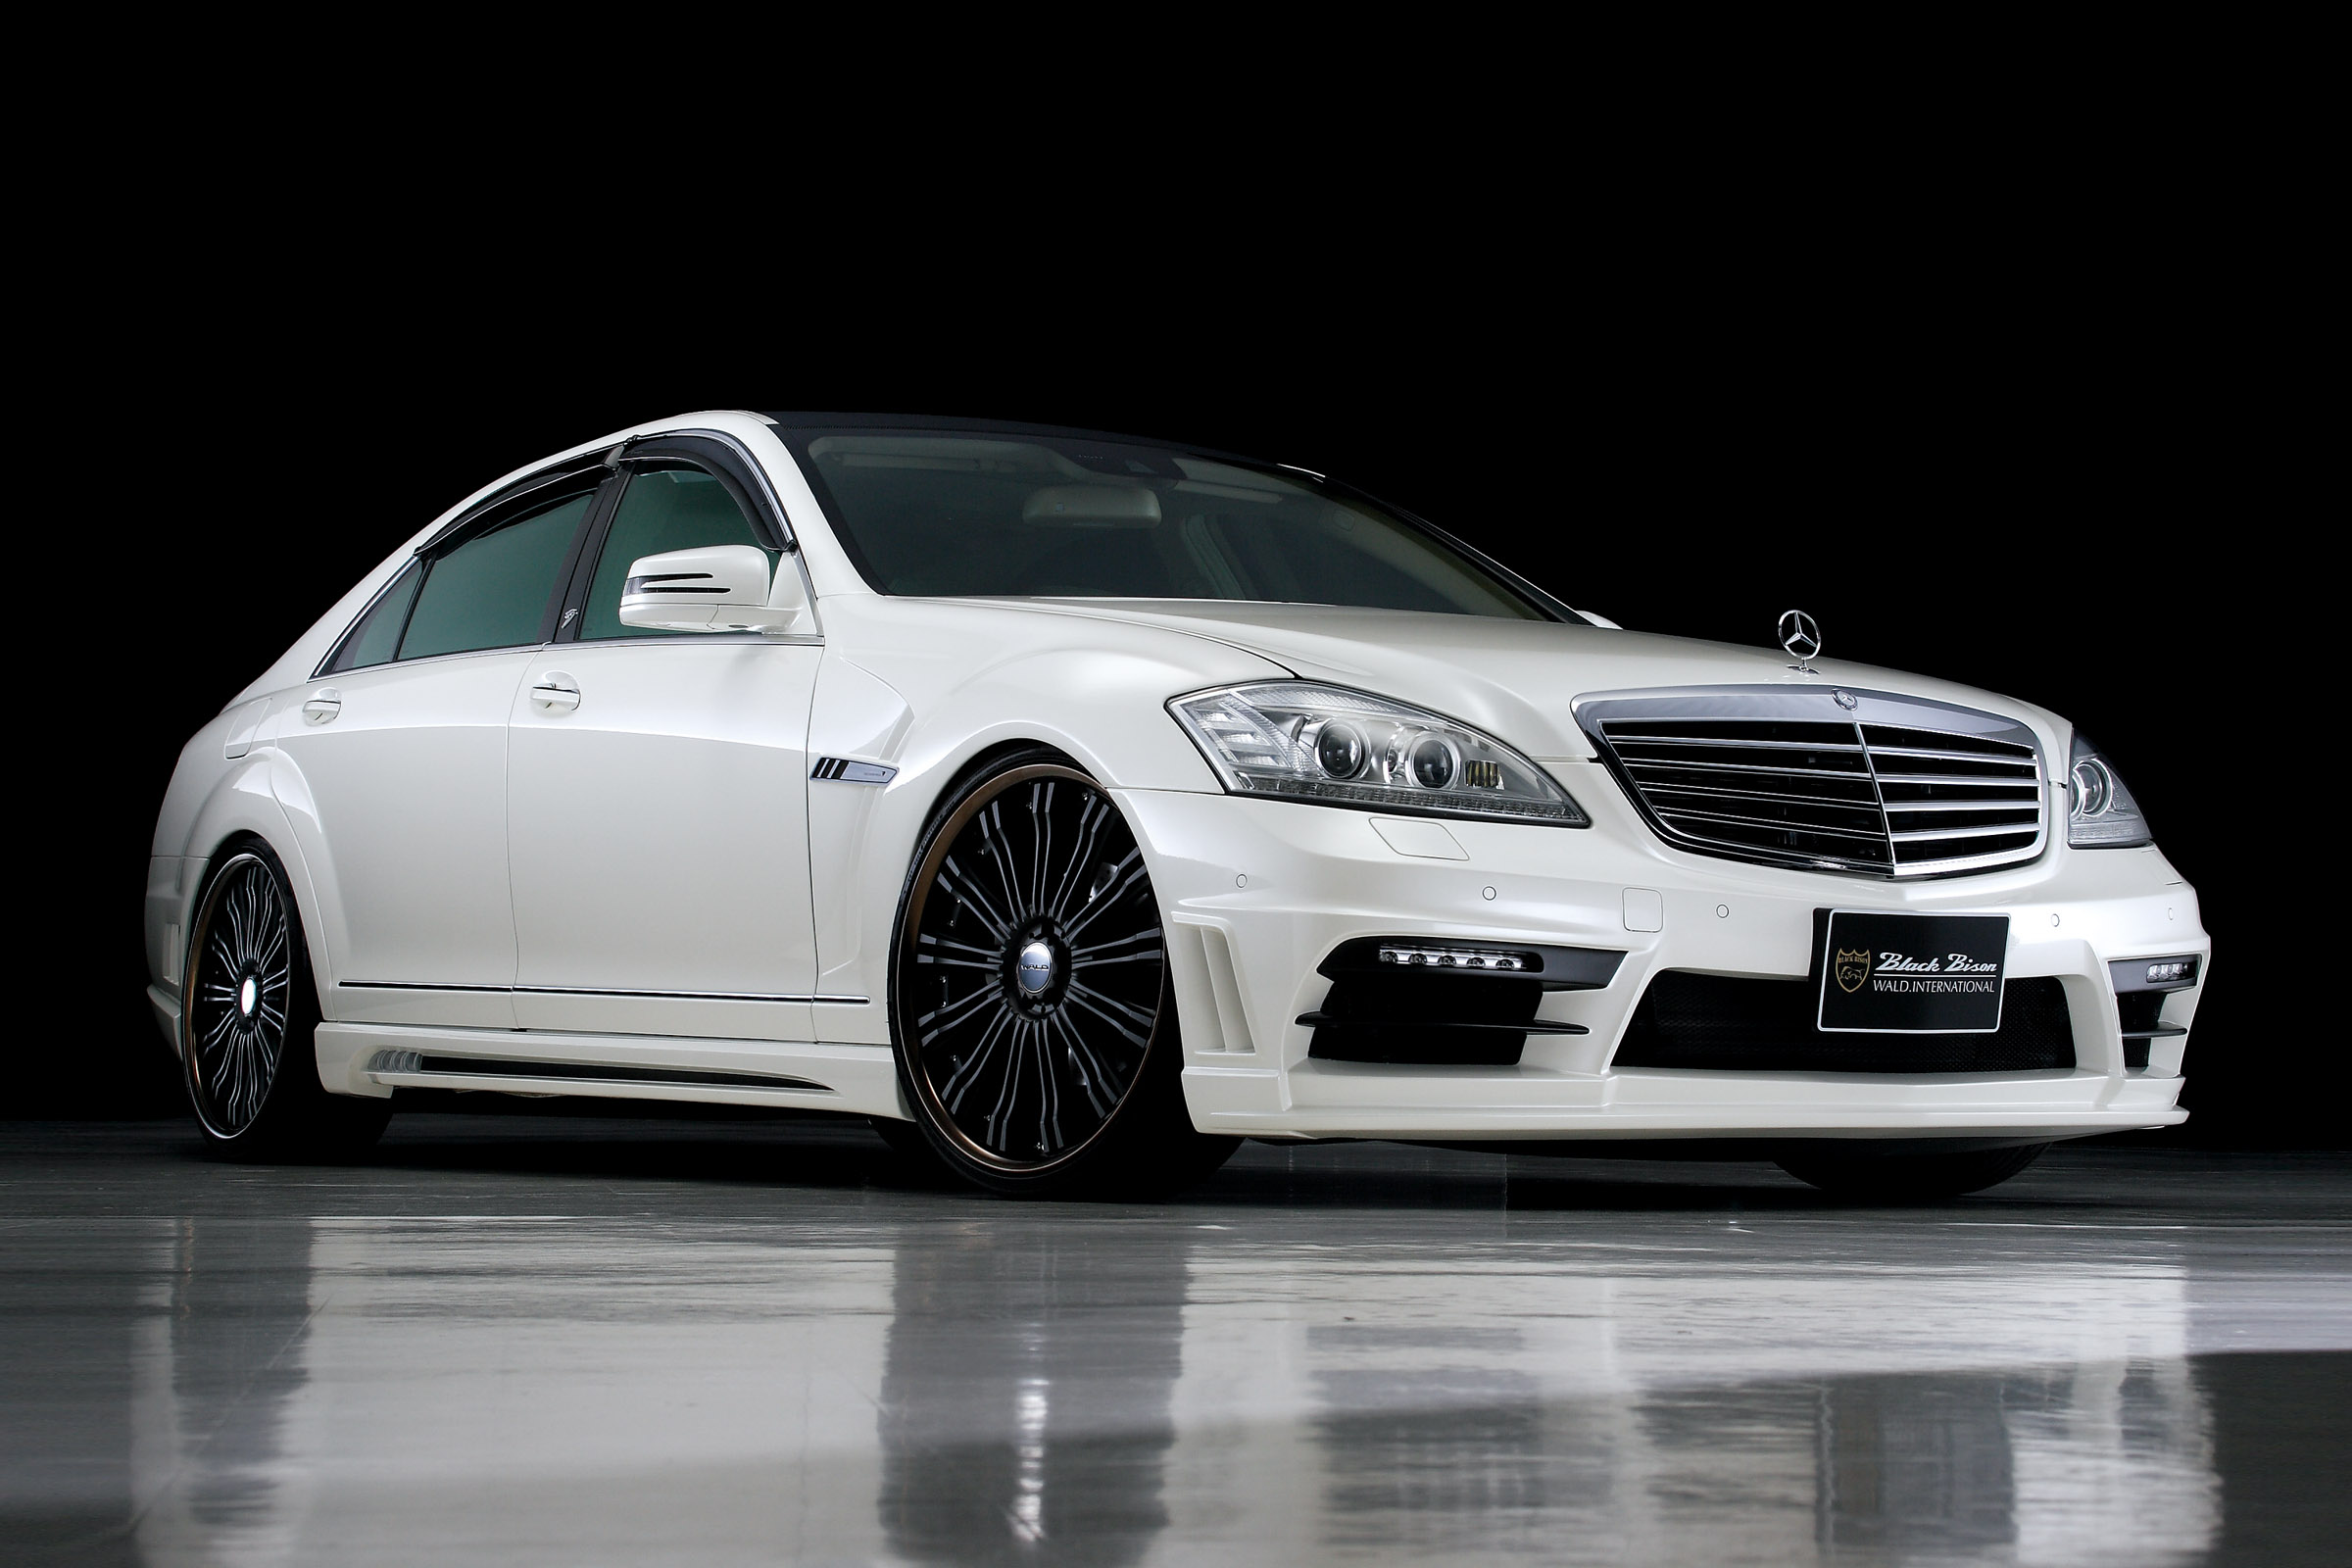 WALD Mercedes Benz S Class Sports Line Black Bison Edition